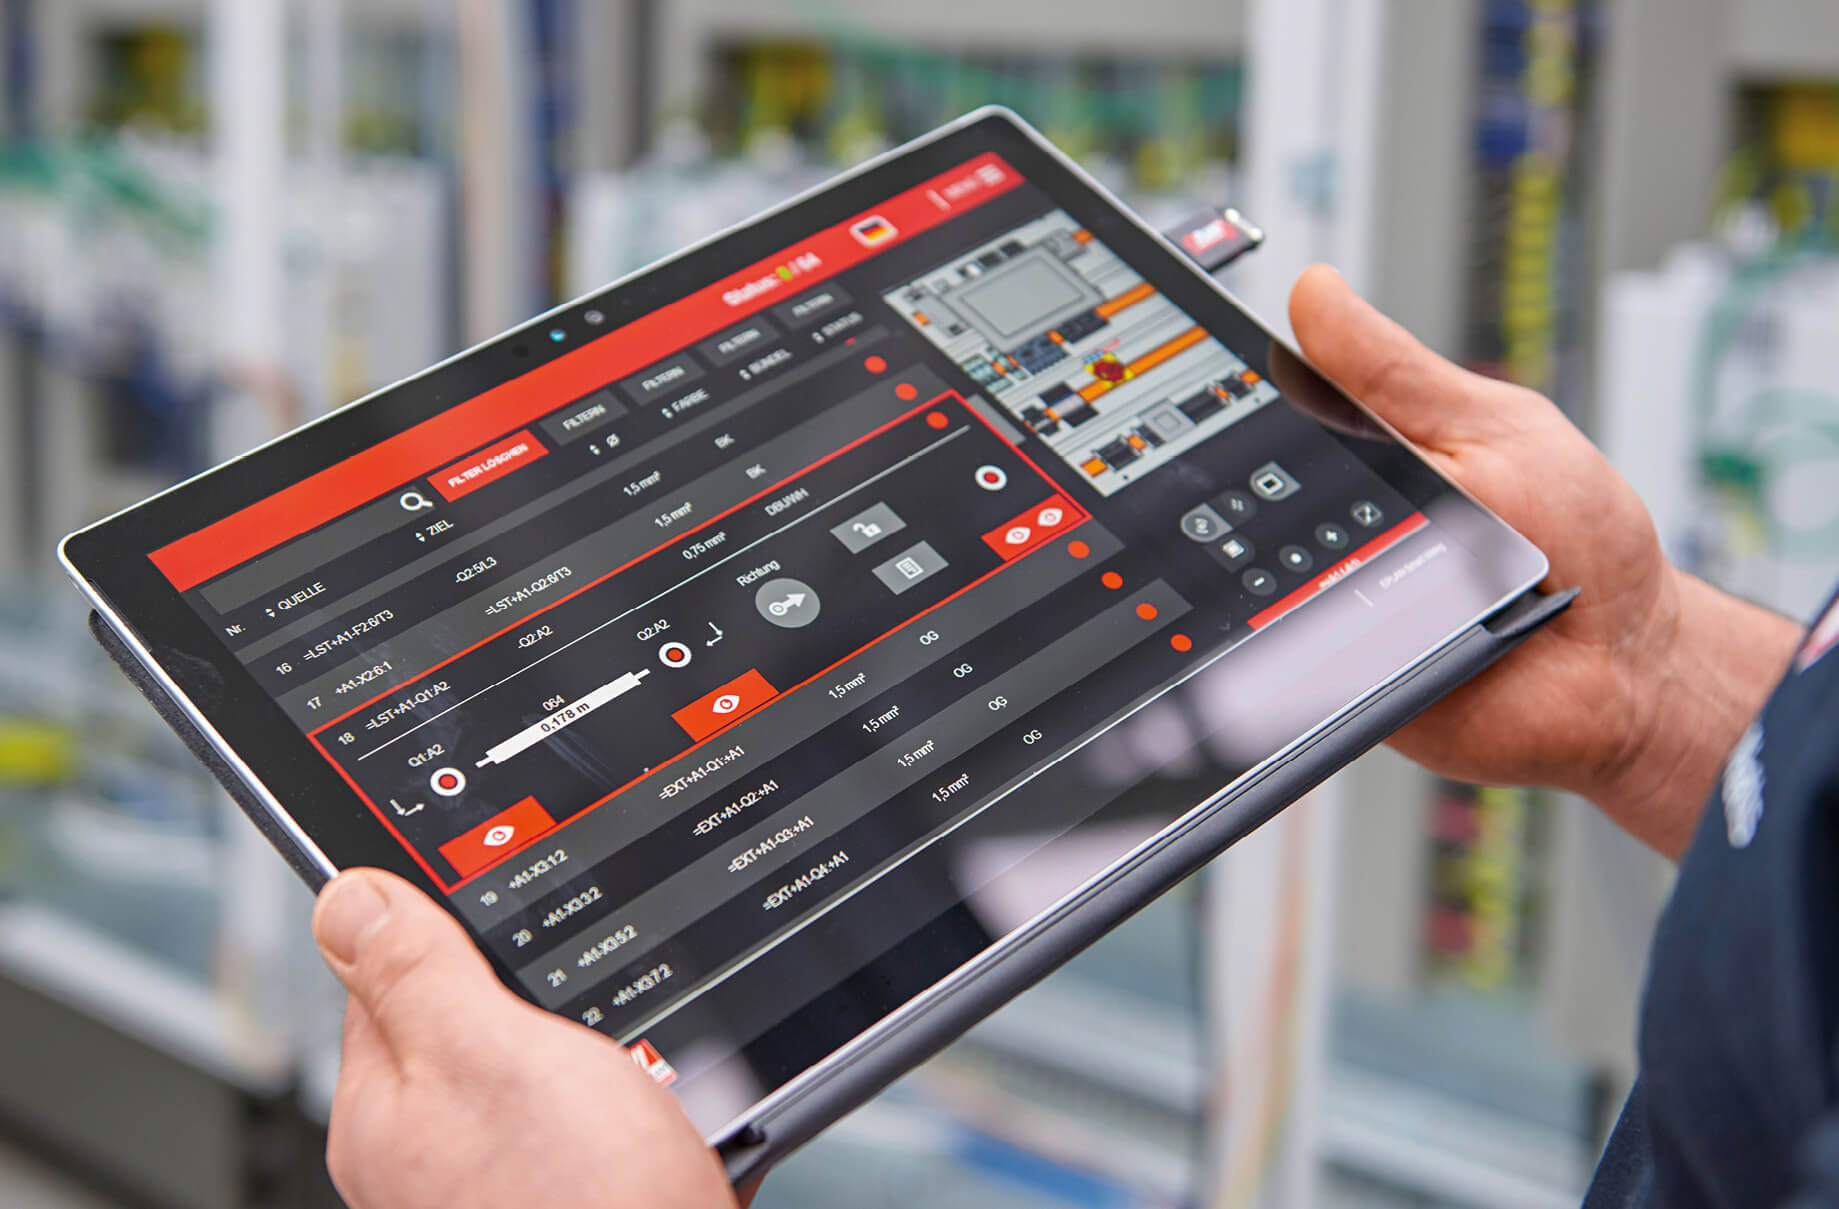 Making it easier to wire components: Staff can access planning data directly at their workstation. They can see all the connections that have to be wired at a glance on their tablet.